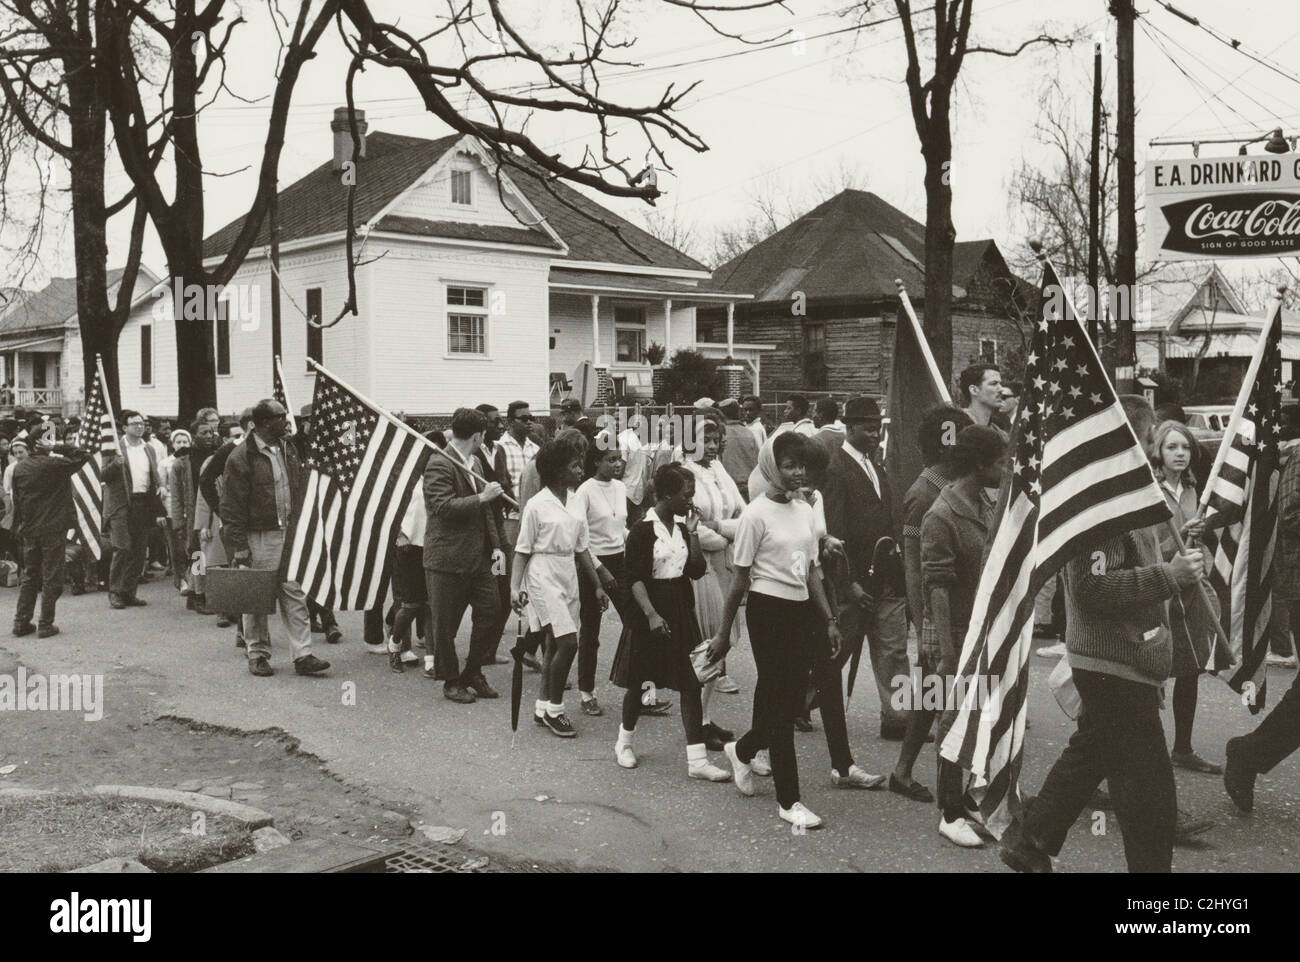 Participants, some carrying American flags, marching in the civil rights march from Selma to Montgomery, Alabama - Stock Image